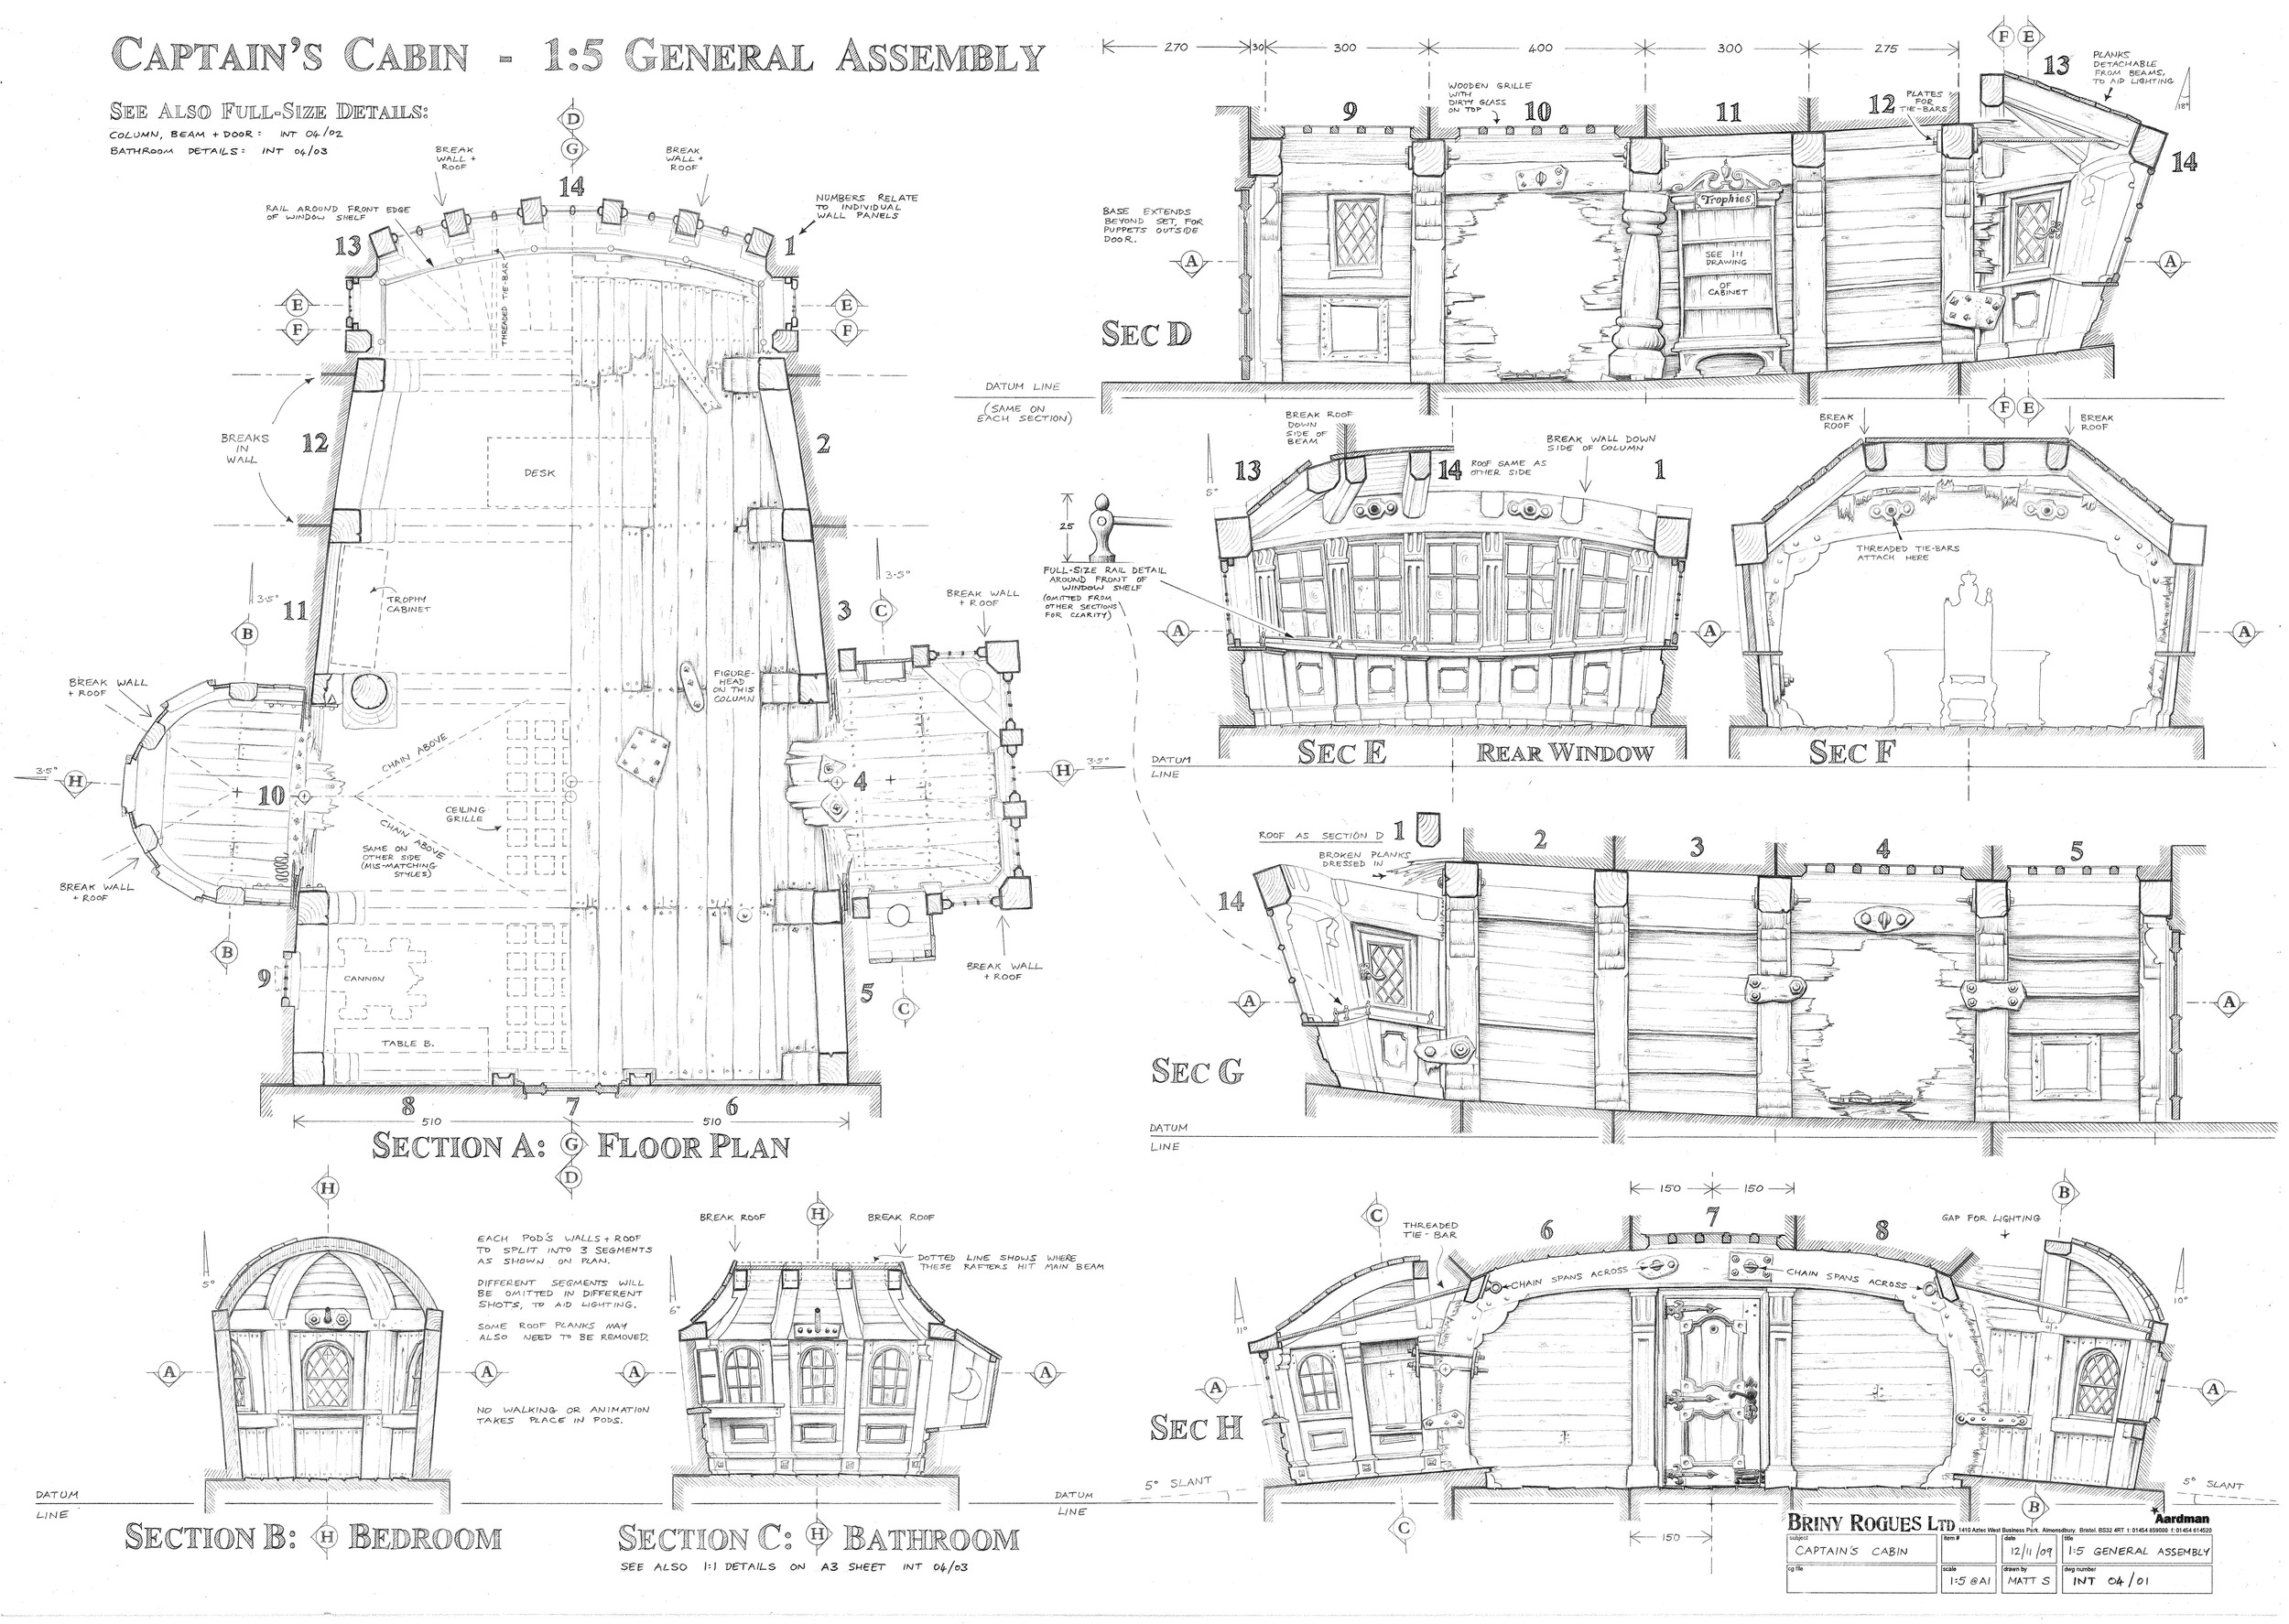 INT 04-01  Captain's Cabin General Assembly.jpg